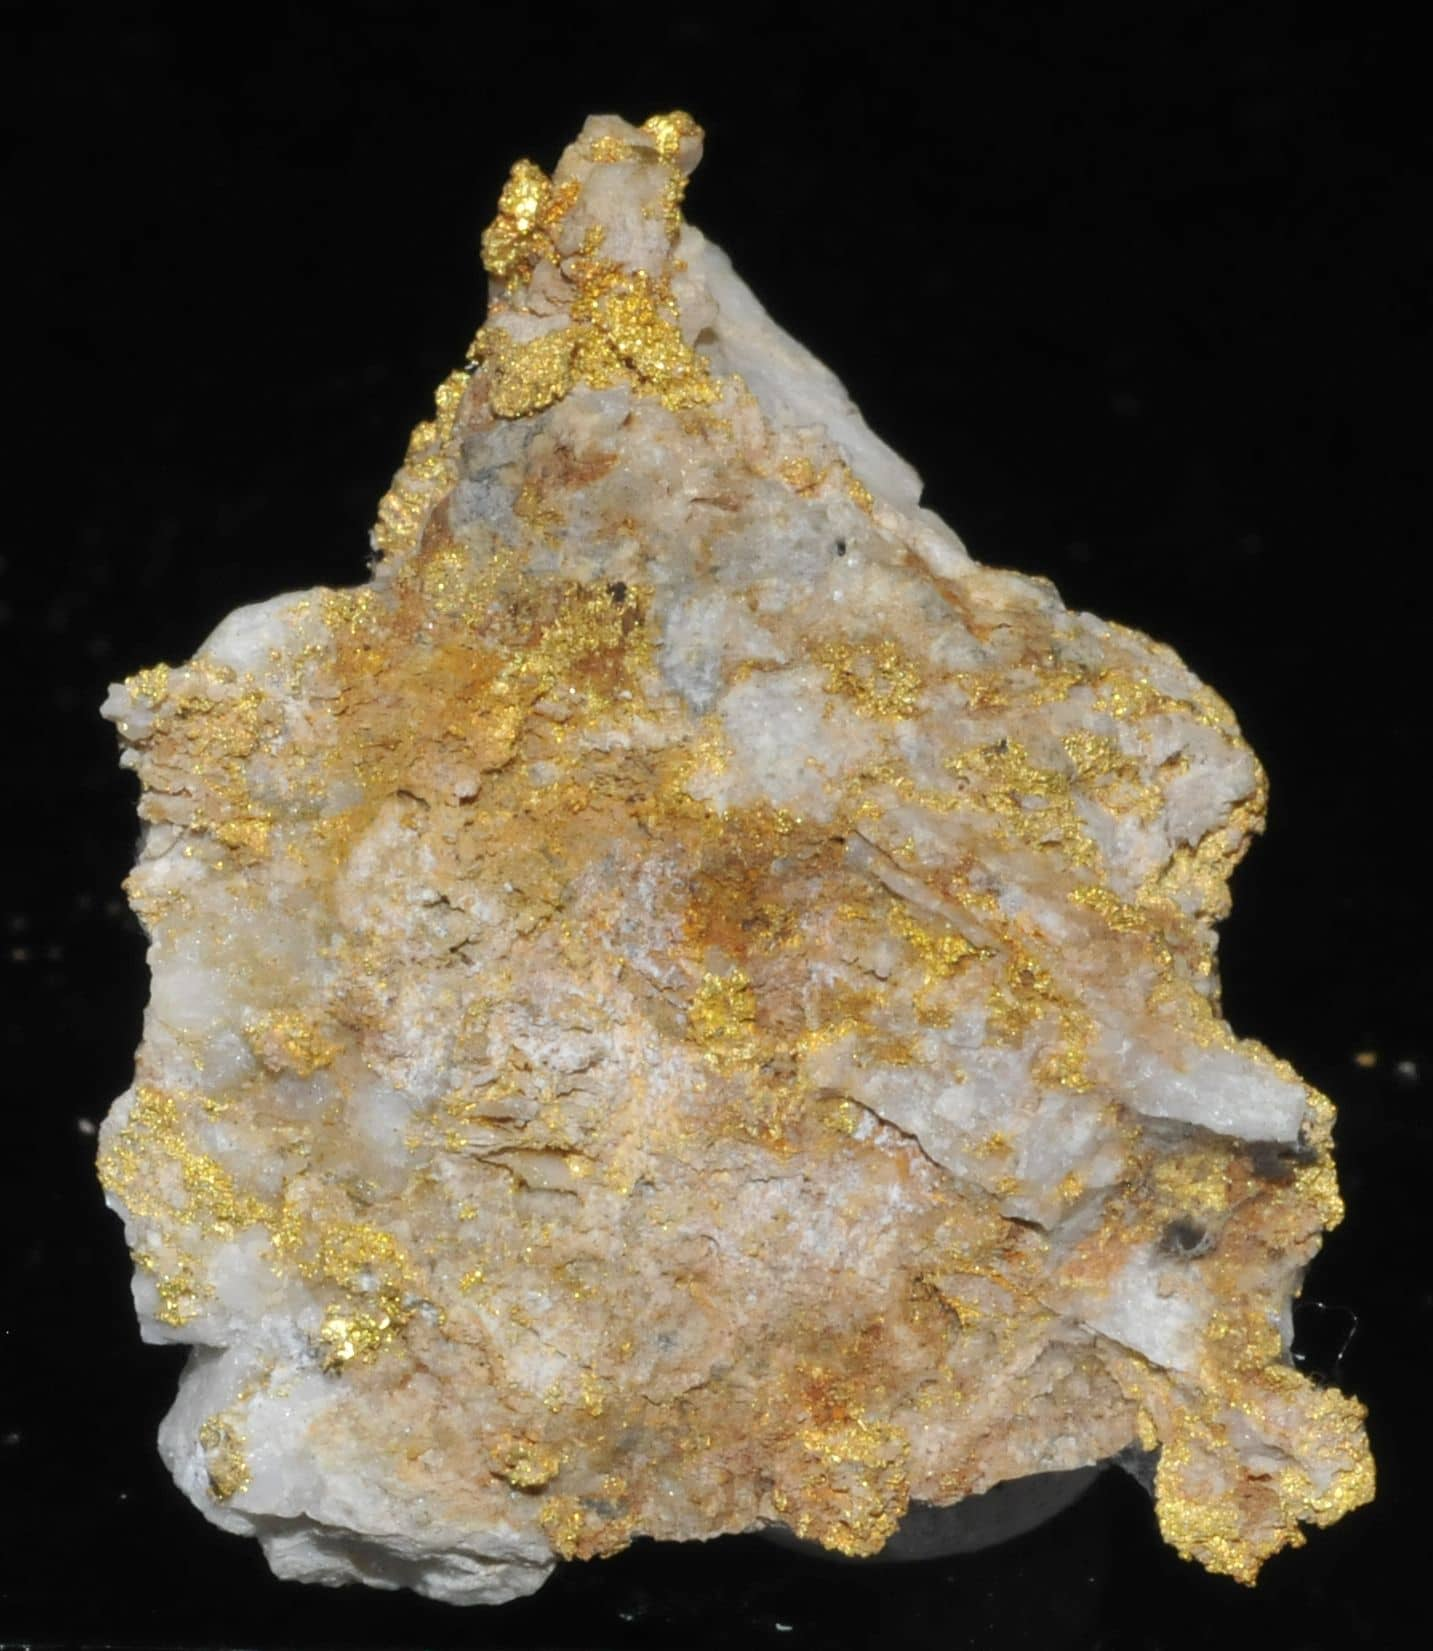 Native gold in quartz from Venezuela